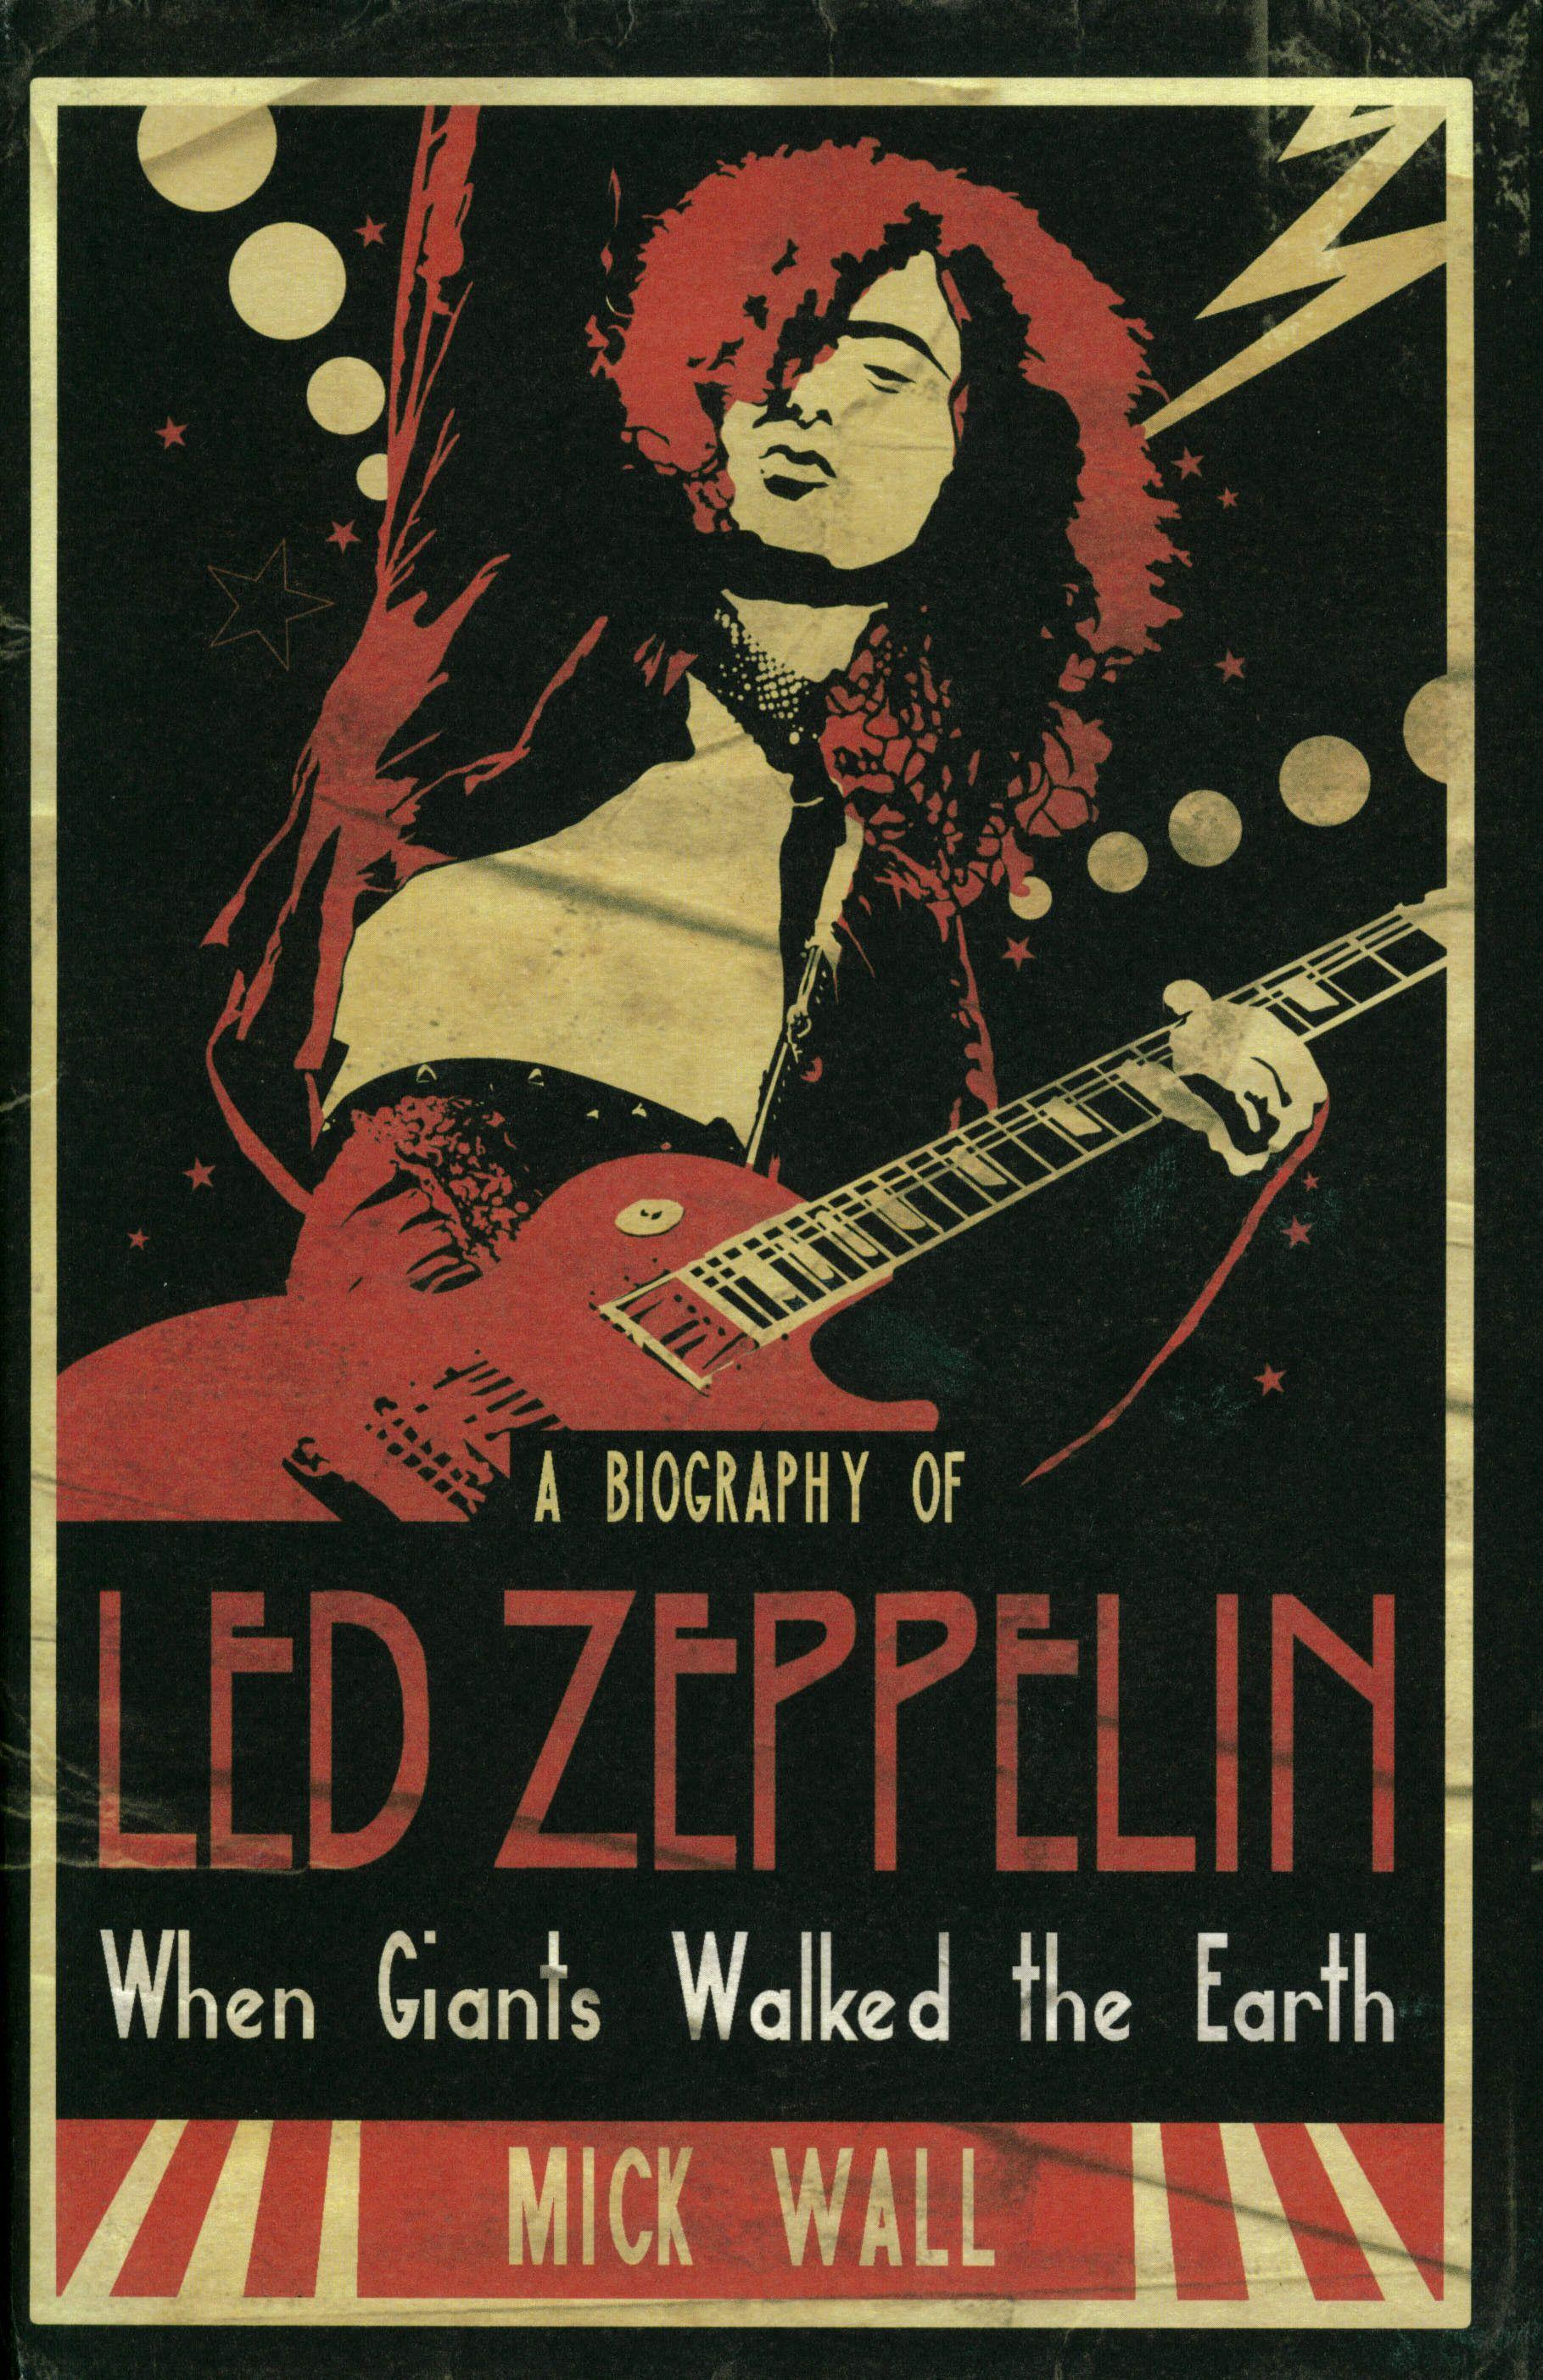 led zeppelin iphone wallpaper led zeppelin mobile wallpapers wallpaper cave 1528